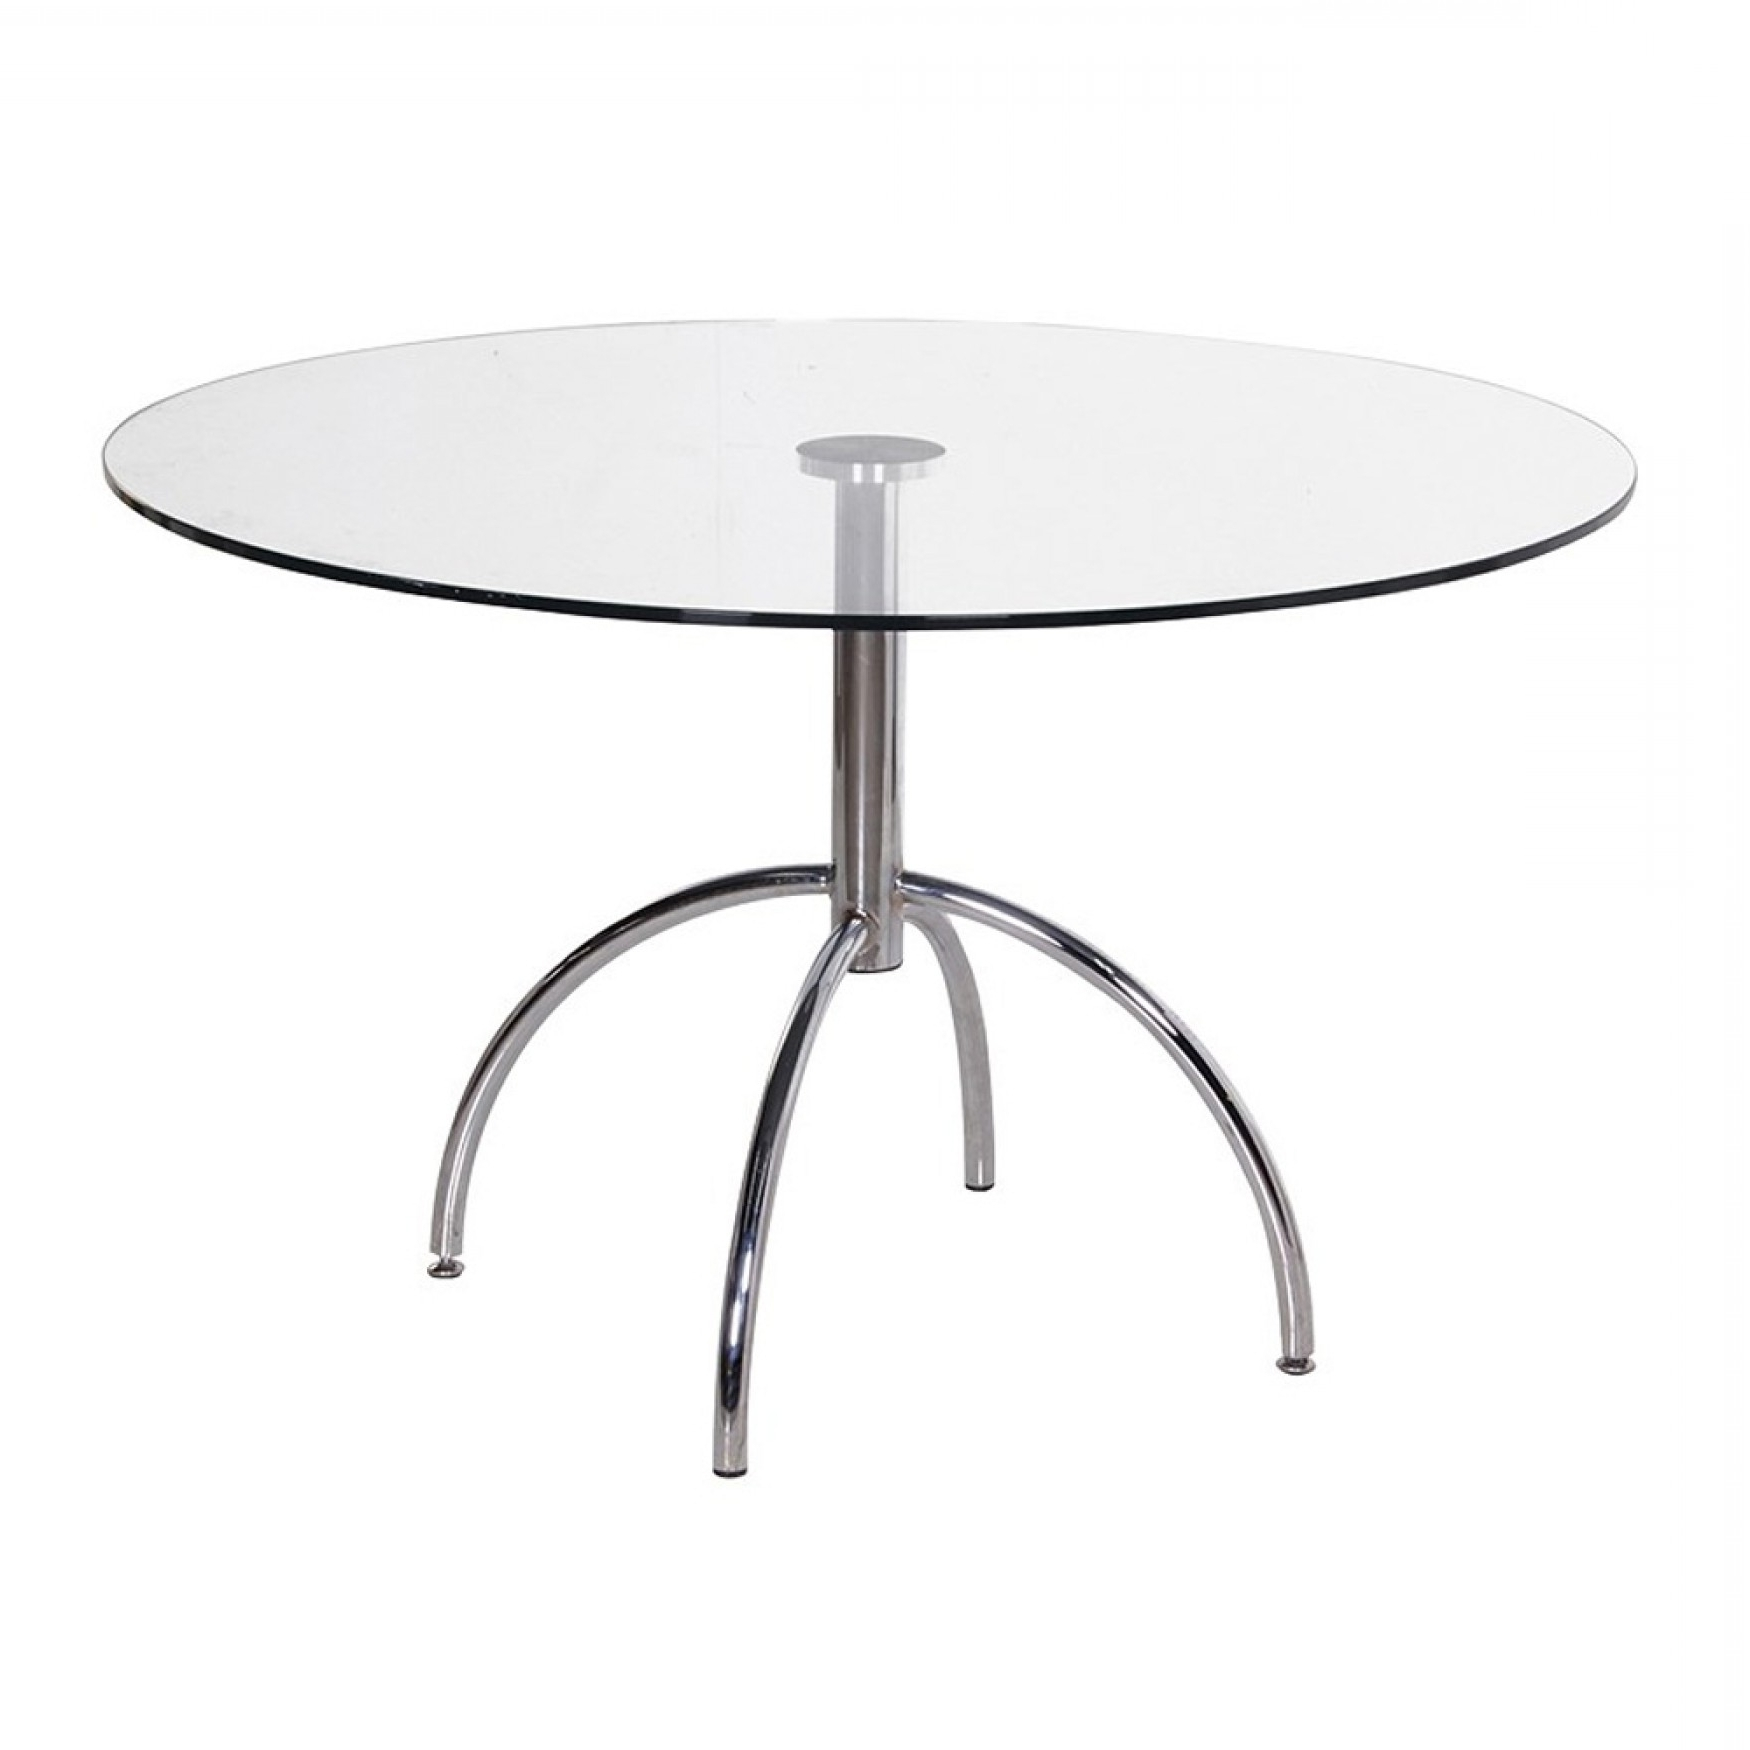 Chrome Glass Dining Tables Inside Famous Round Chrome/glass Dining Table (View 8 of 25)